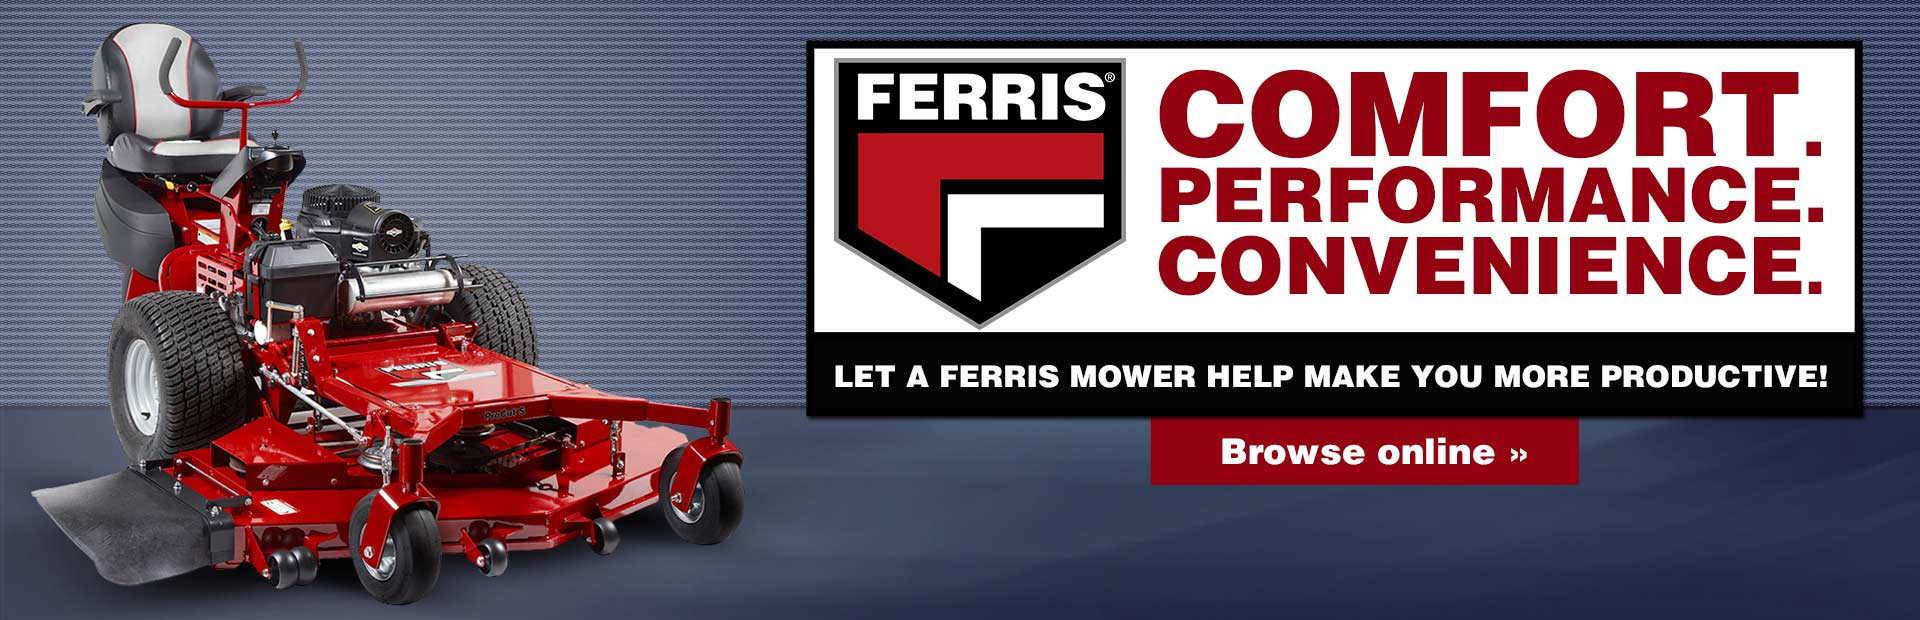 Ferris mowers offer comfort, performance, and convenience. Let a Ferris mower help make you more productive! Click here to browse online.